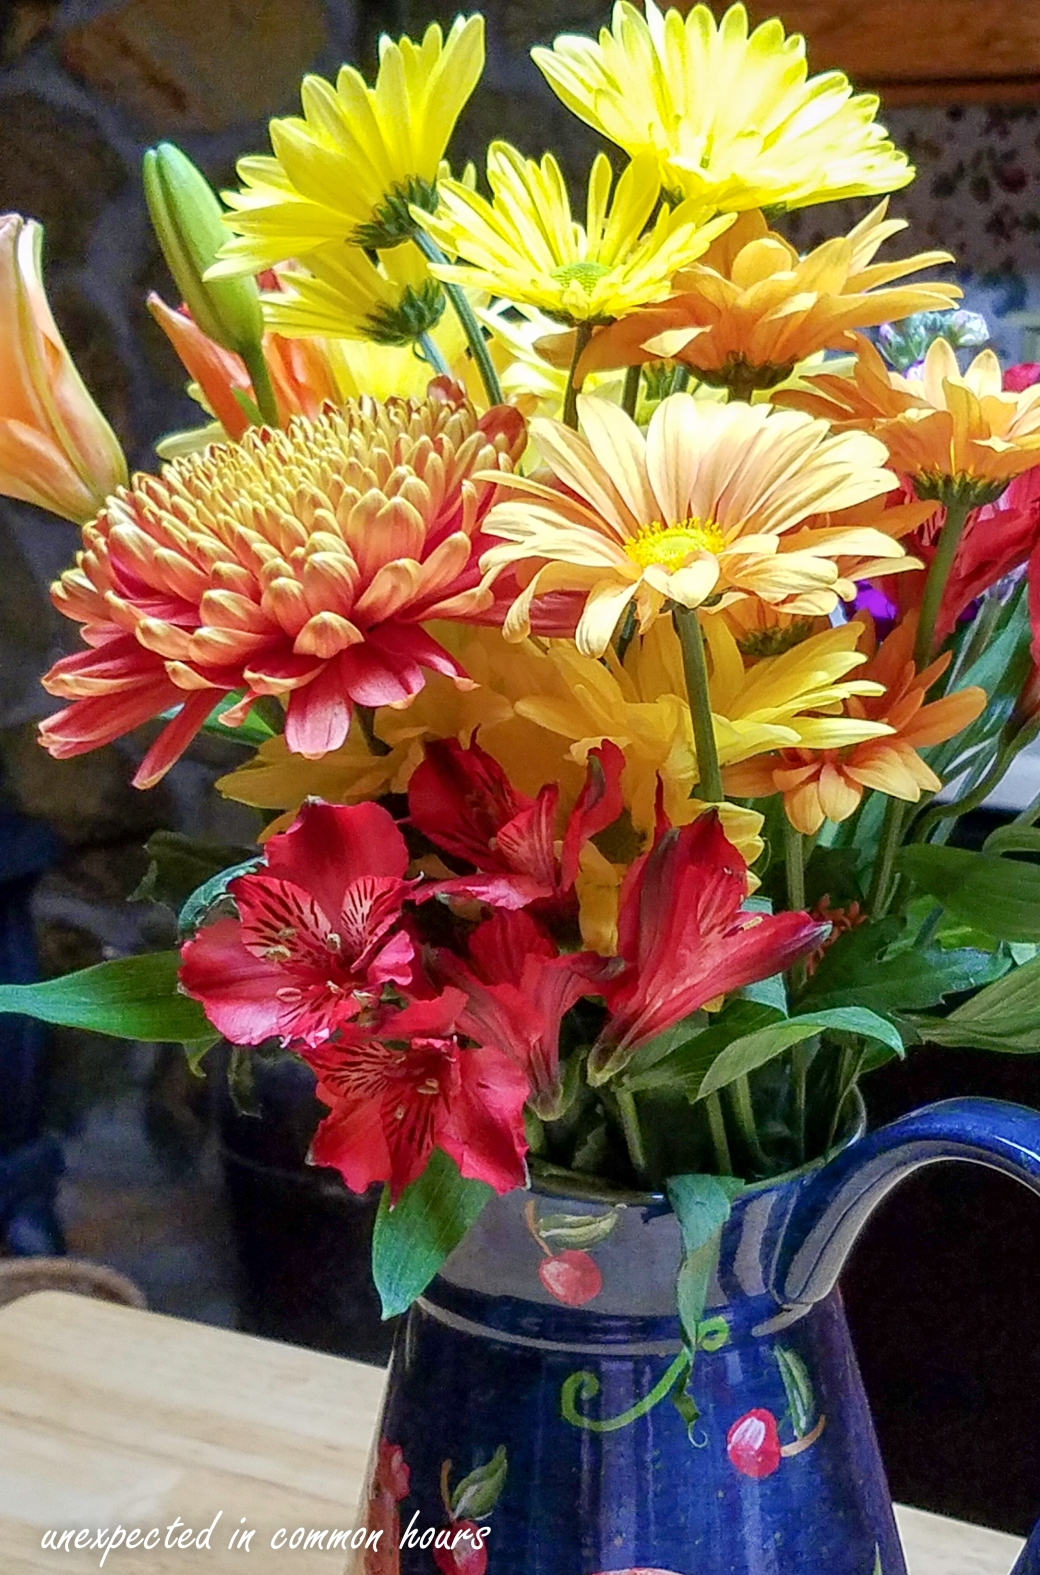 Birthday Flowers Usher In October Unexpected In Common Hours